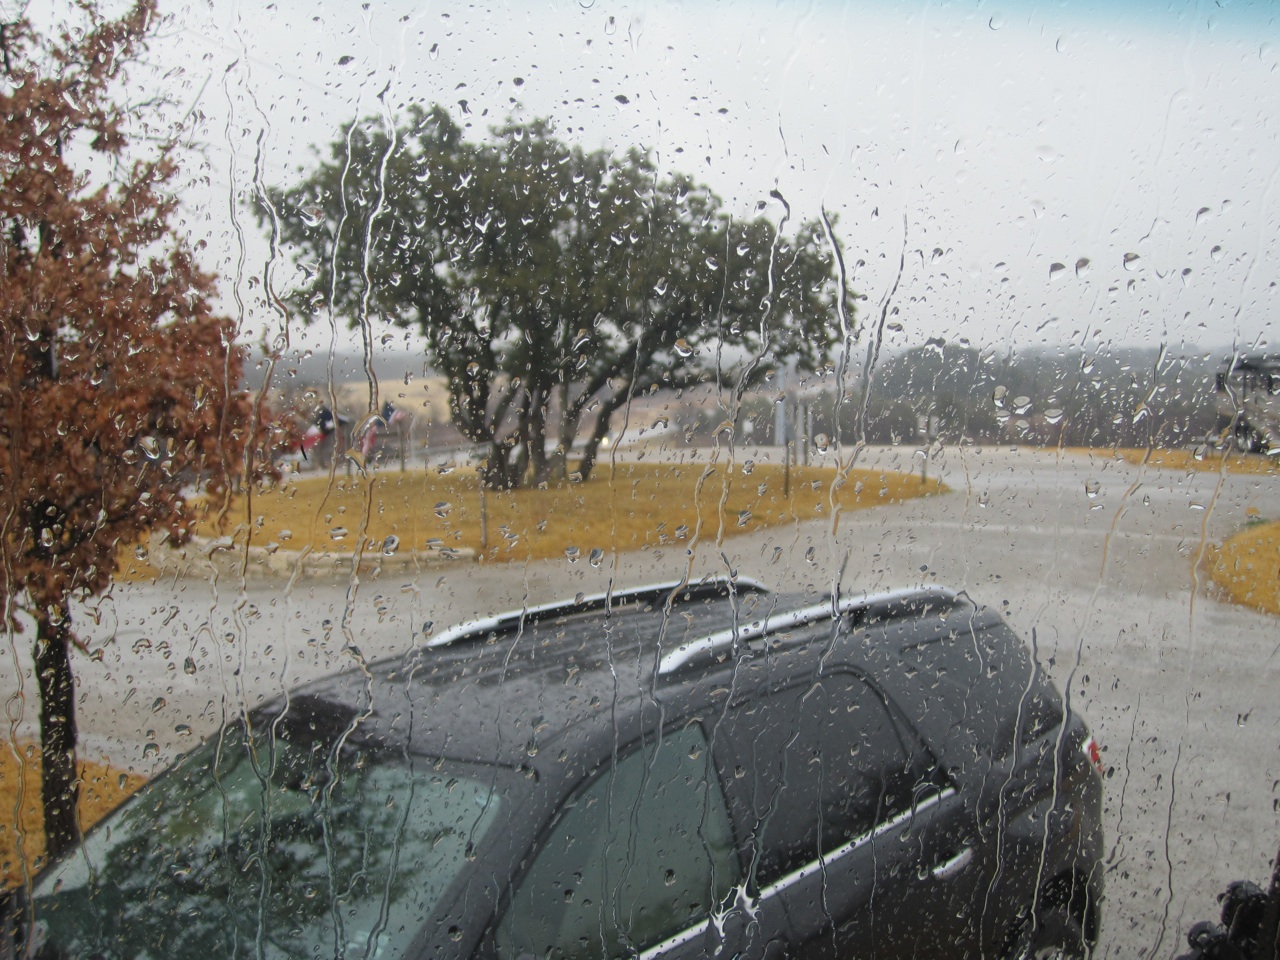 Rainy Day, Christmas Eve 2010, Granbury, TX